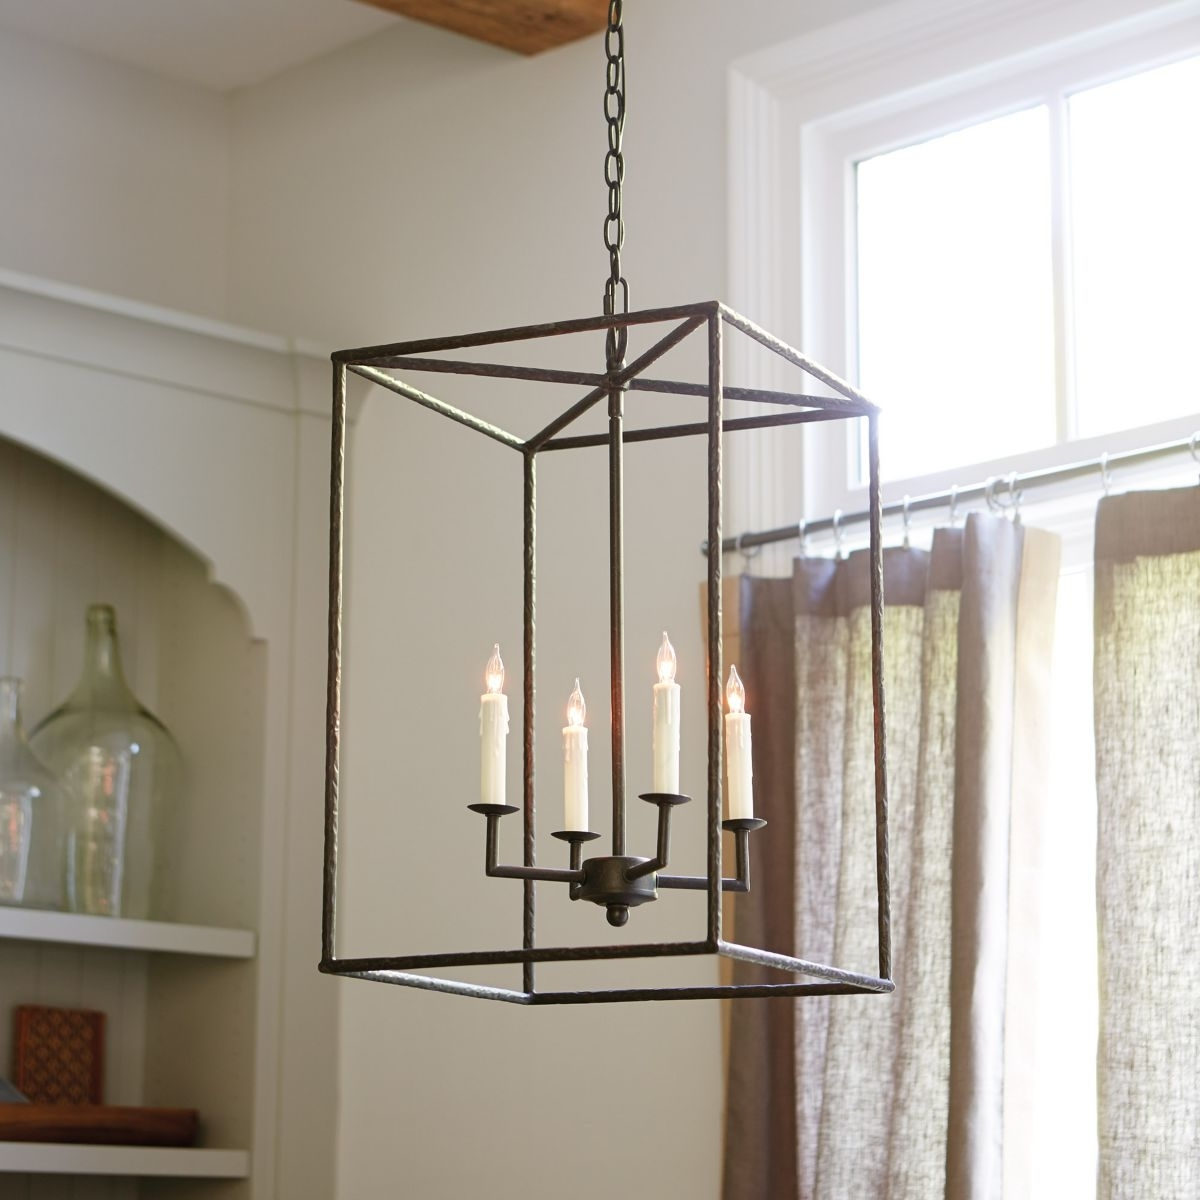 Hadley 4 Light Pendant Chandelier 199.00  (View 7 of 20)